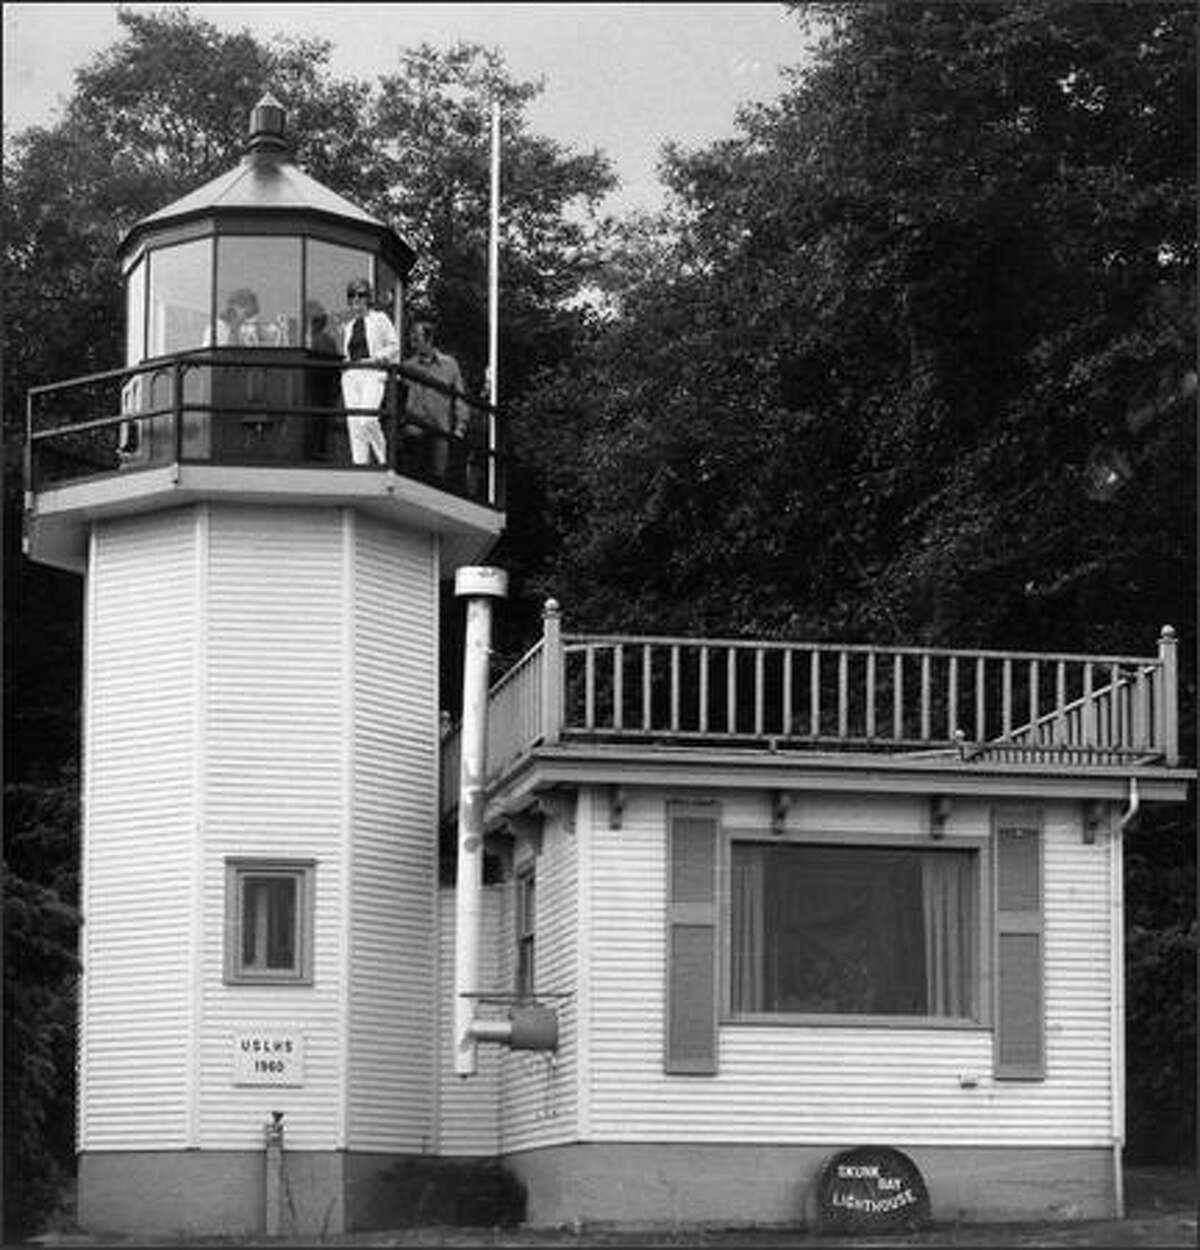 Skunk Bay Lighthouse is inspected by some of the new owners in September, 1970. (Seattle Post-Intelligencer)